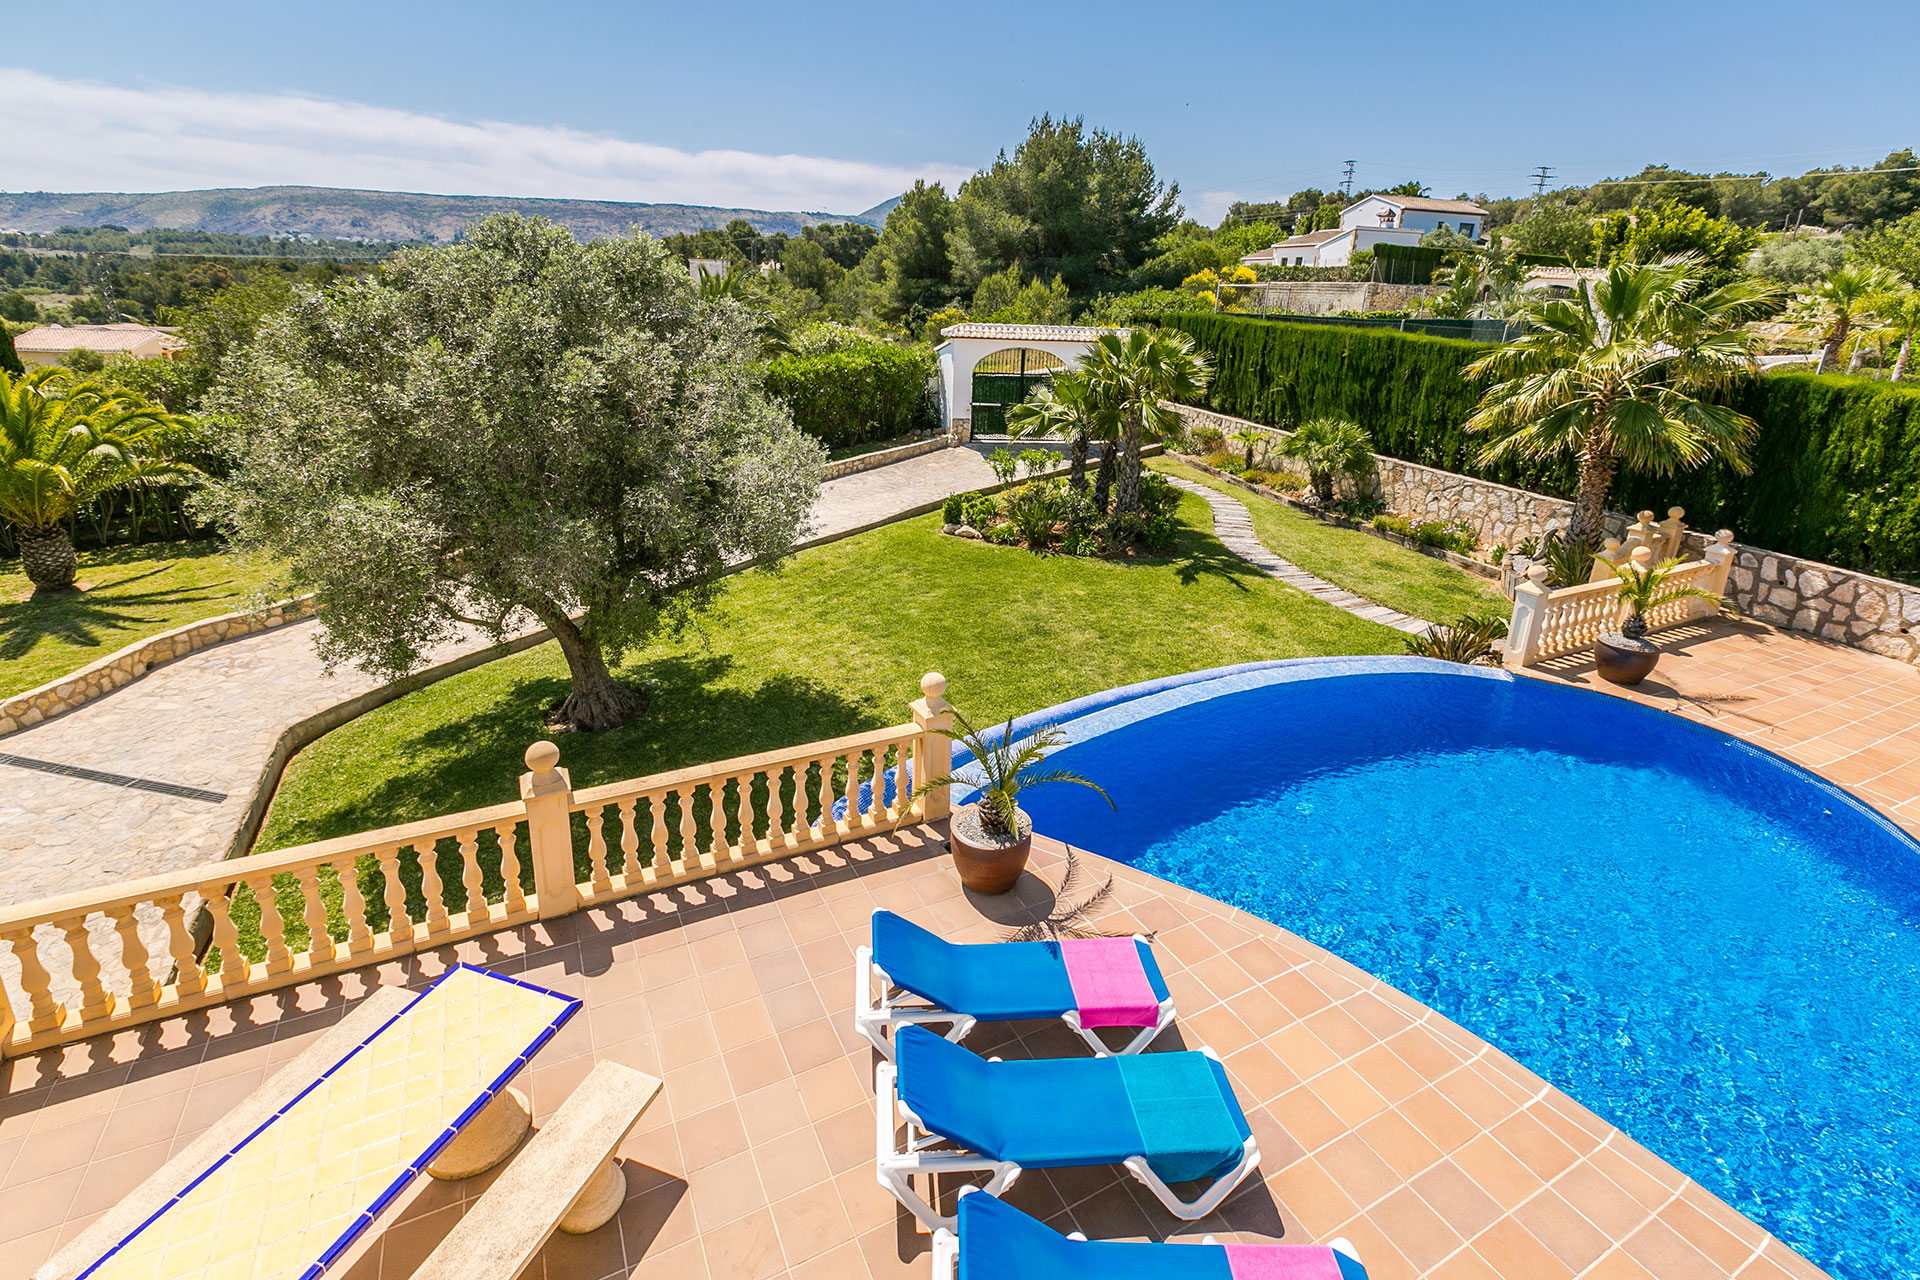 Javea rentals sun terrace with pool and mountain view.